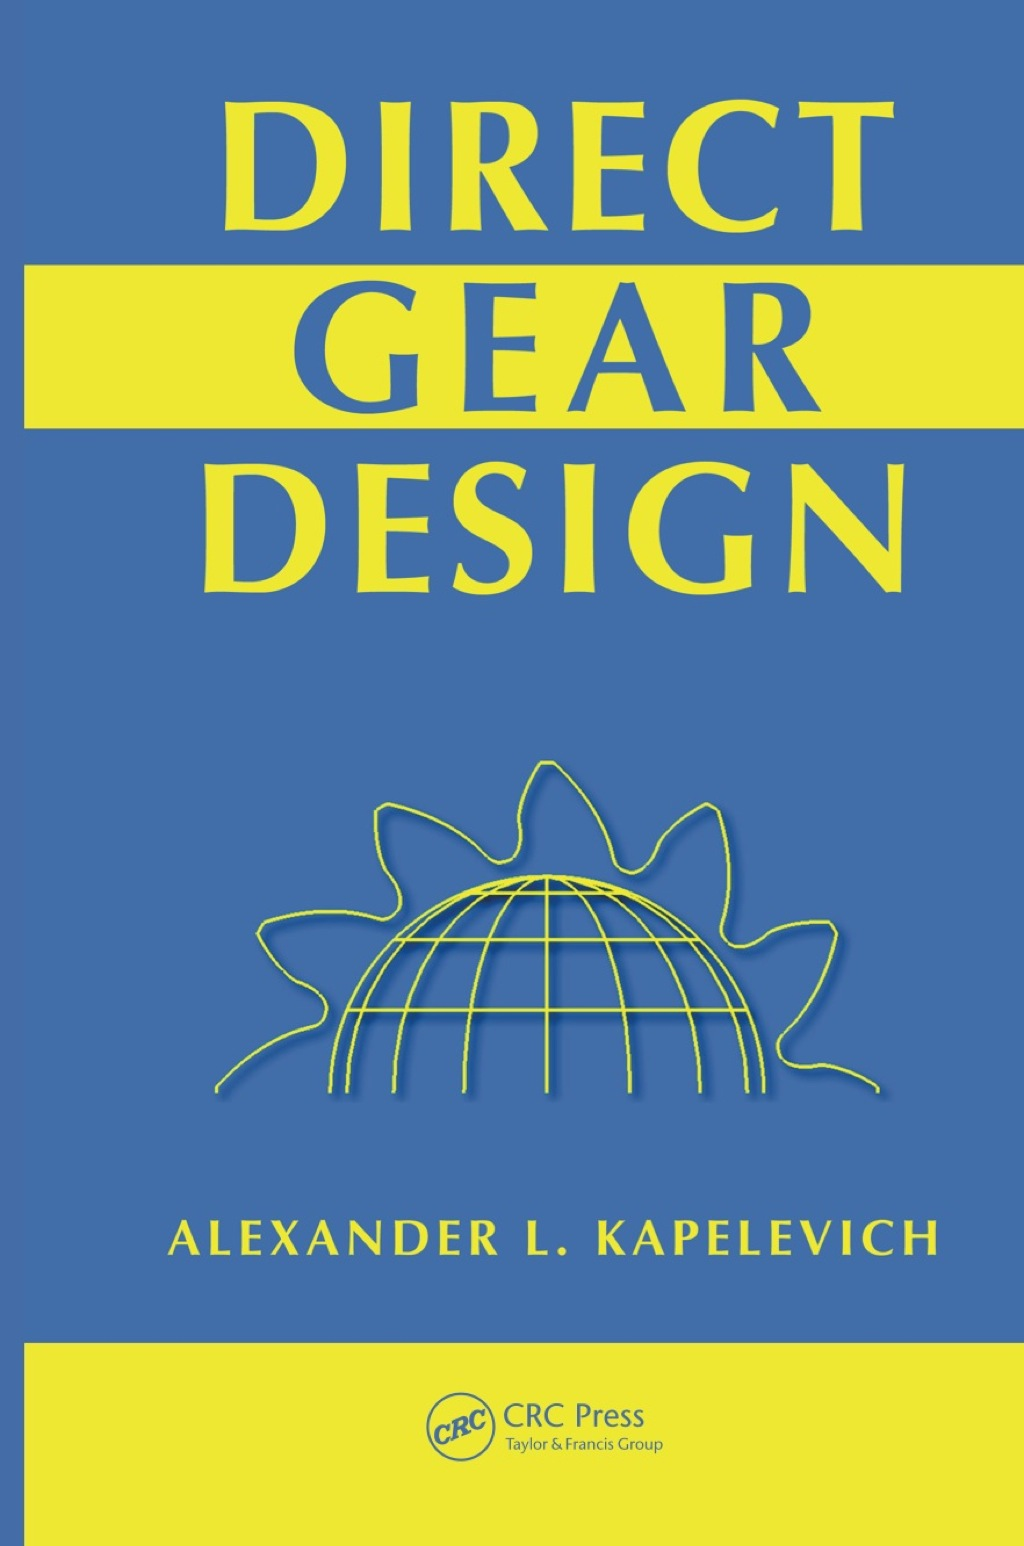 Direct Gear Design (ebook)